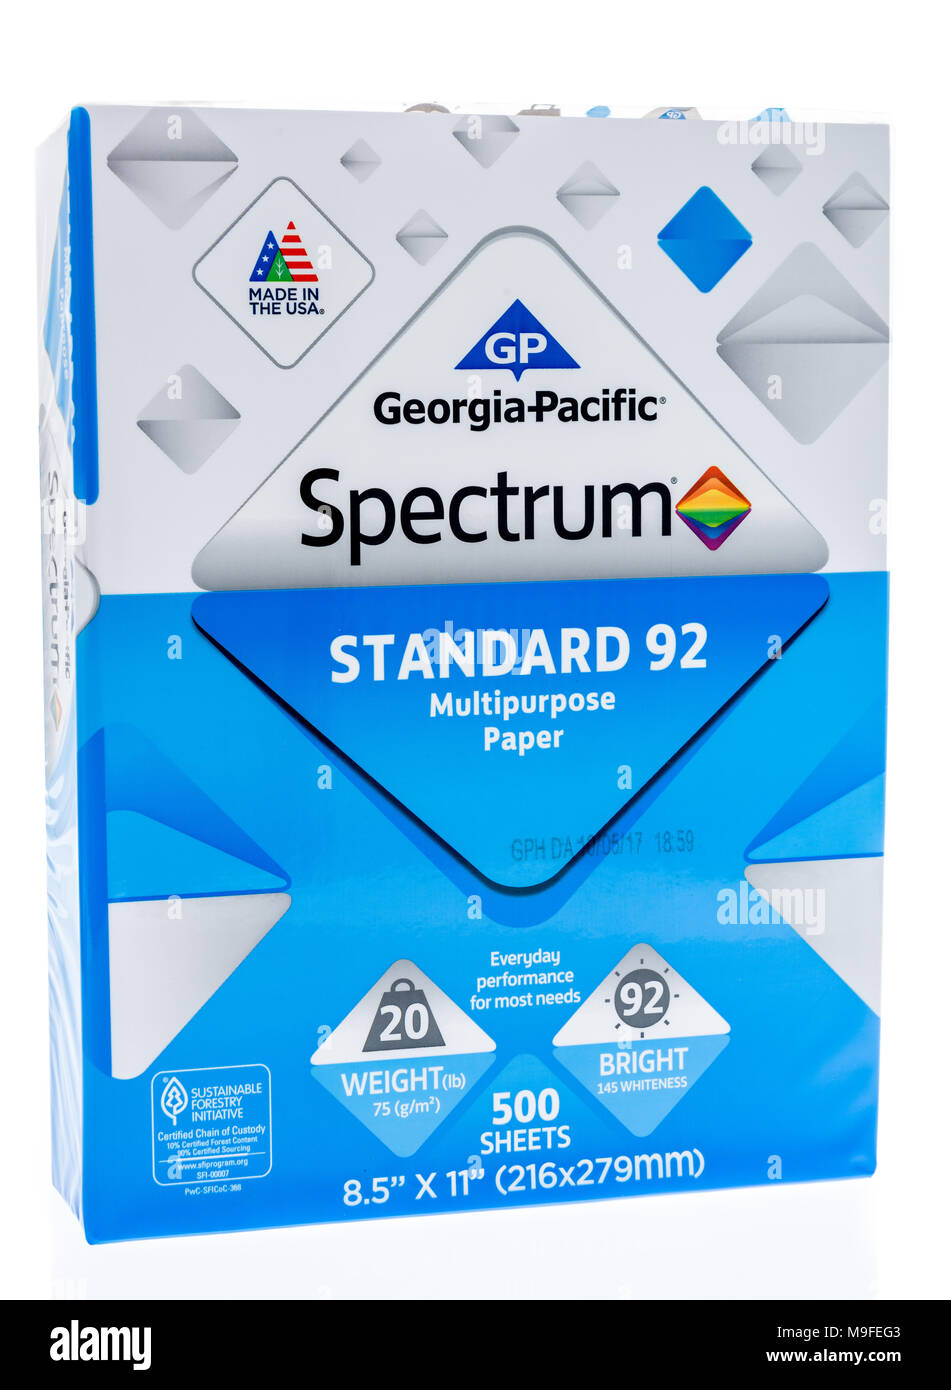 Printer paper stock photos printer paper stock images alamy winneconne wi 15 march 2018 a ream of georgia pacific spectrum printer paper biocorpaavc Images